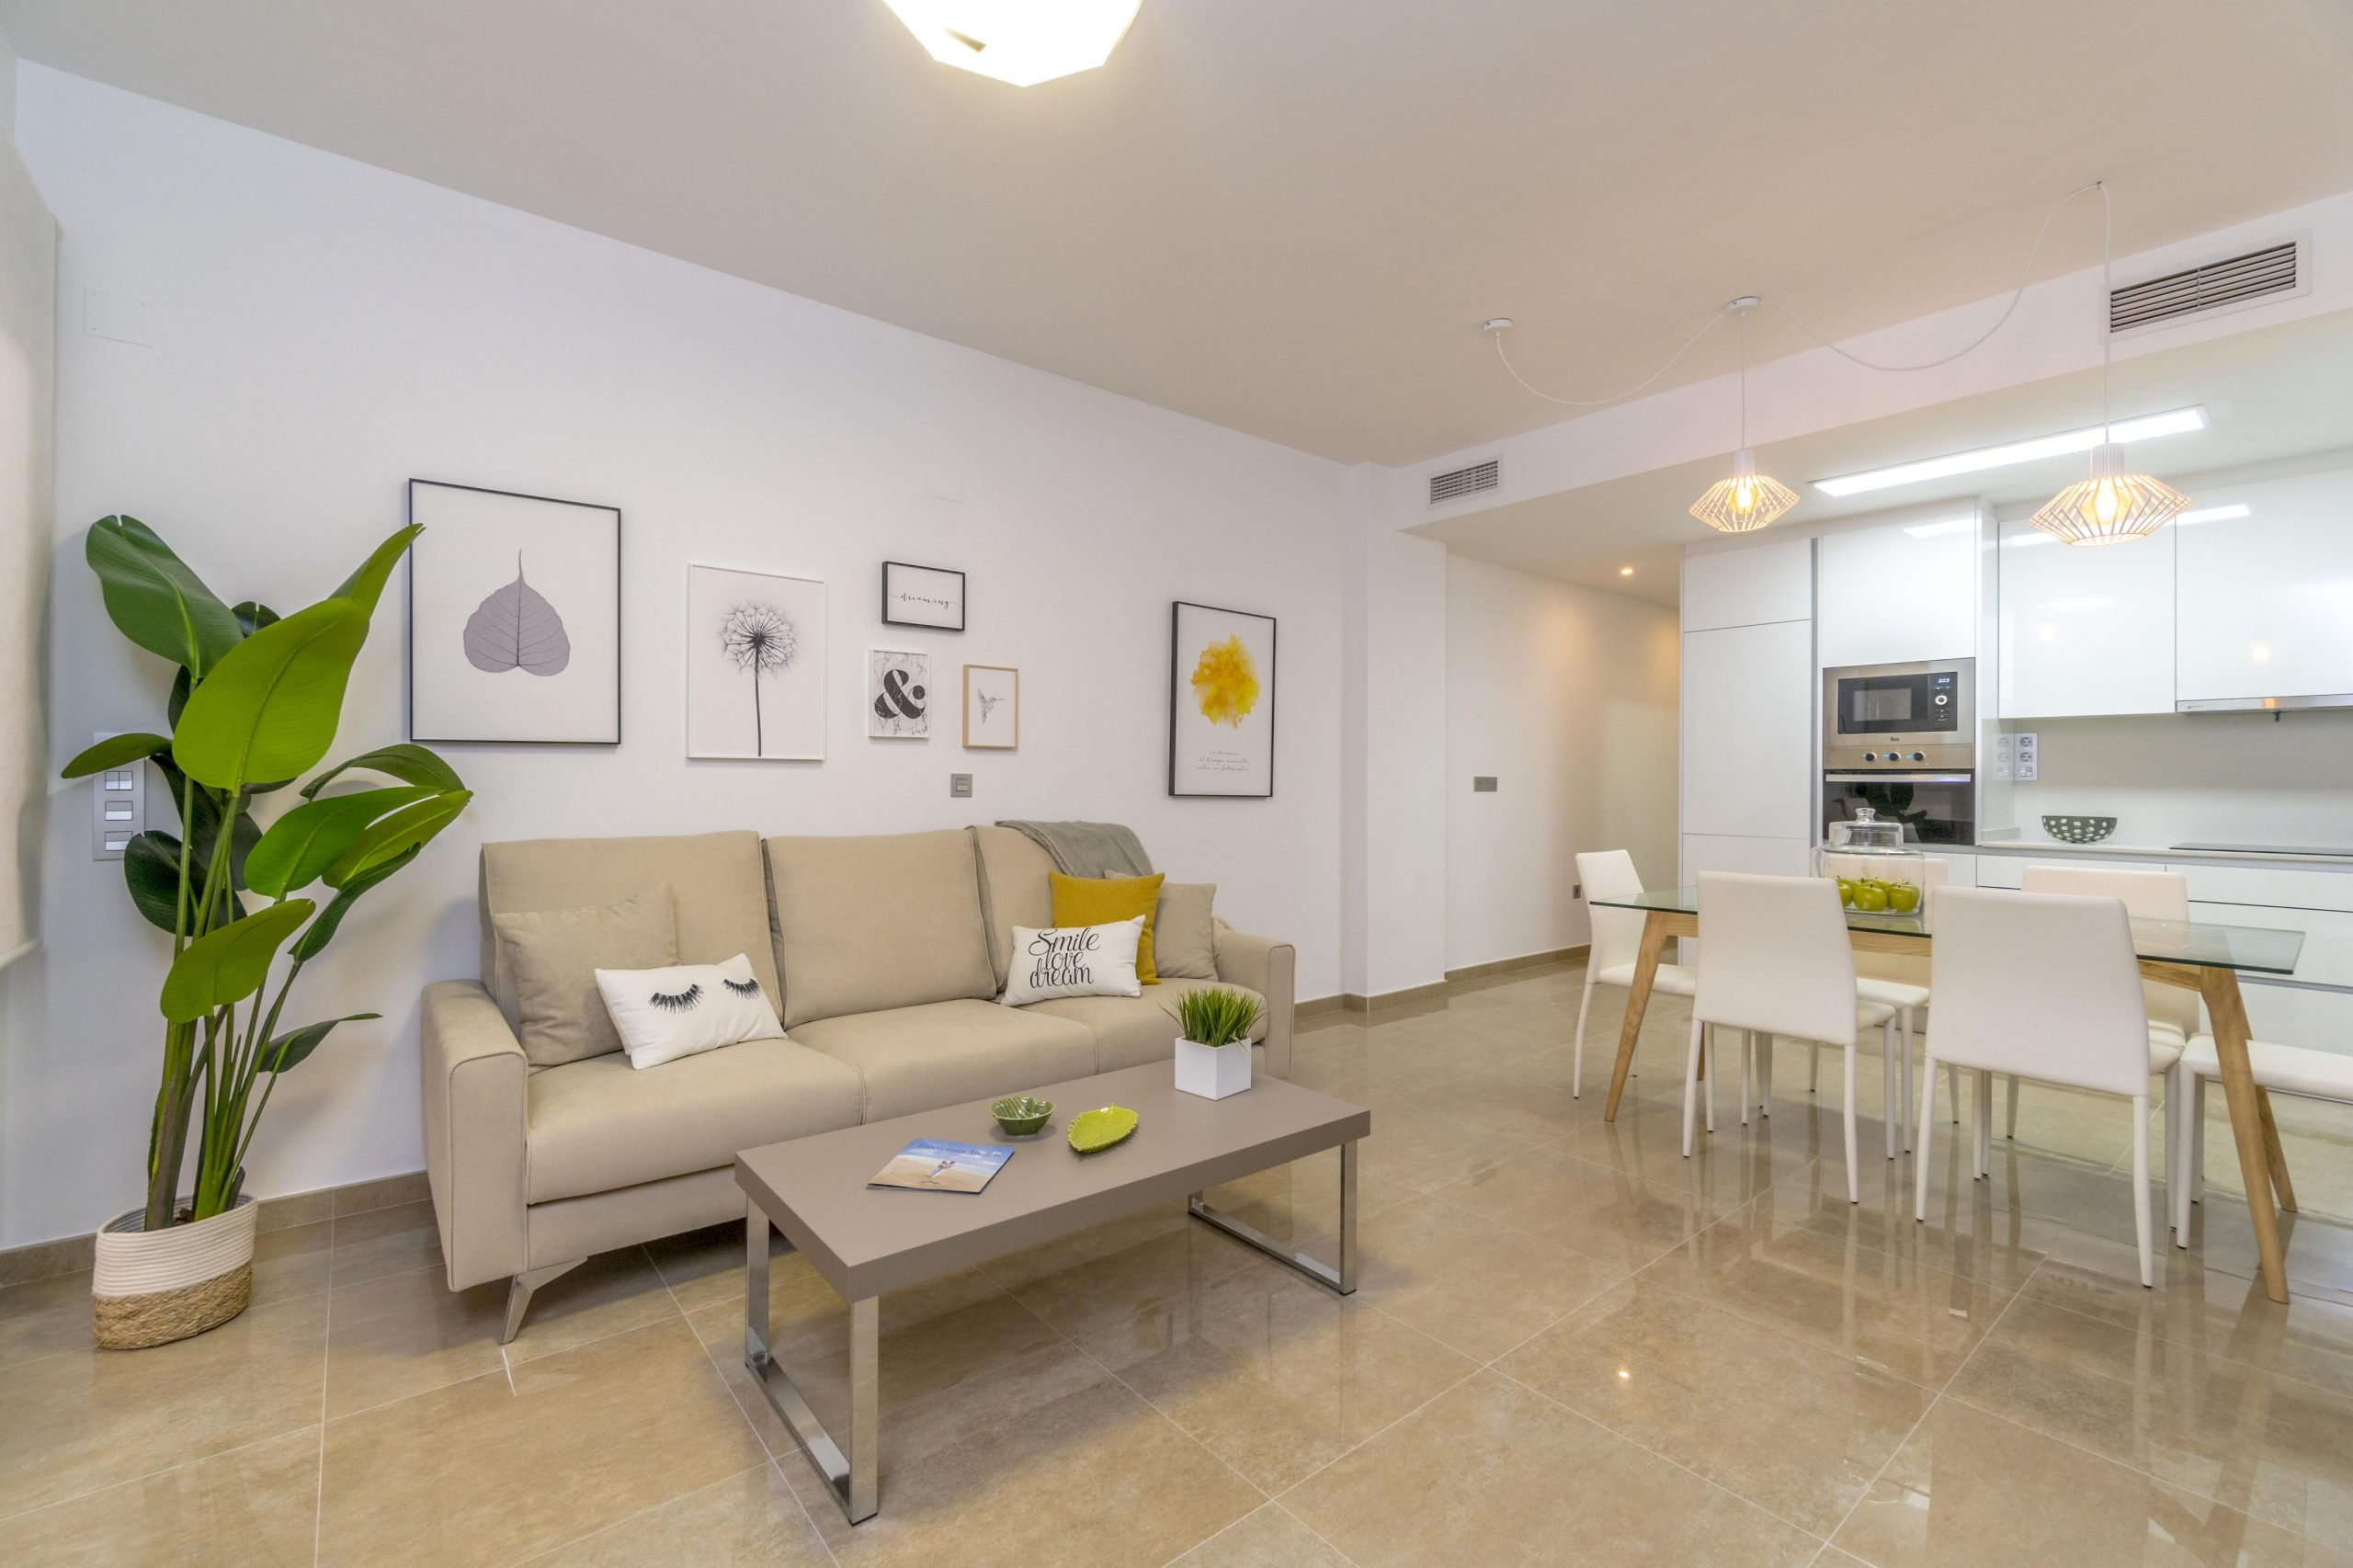 Apartments For Sale in Torrevieja with 3 Bedrooms and Terrace